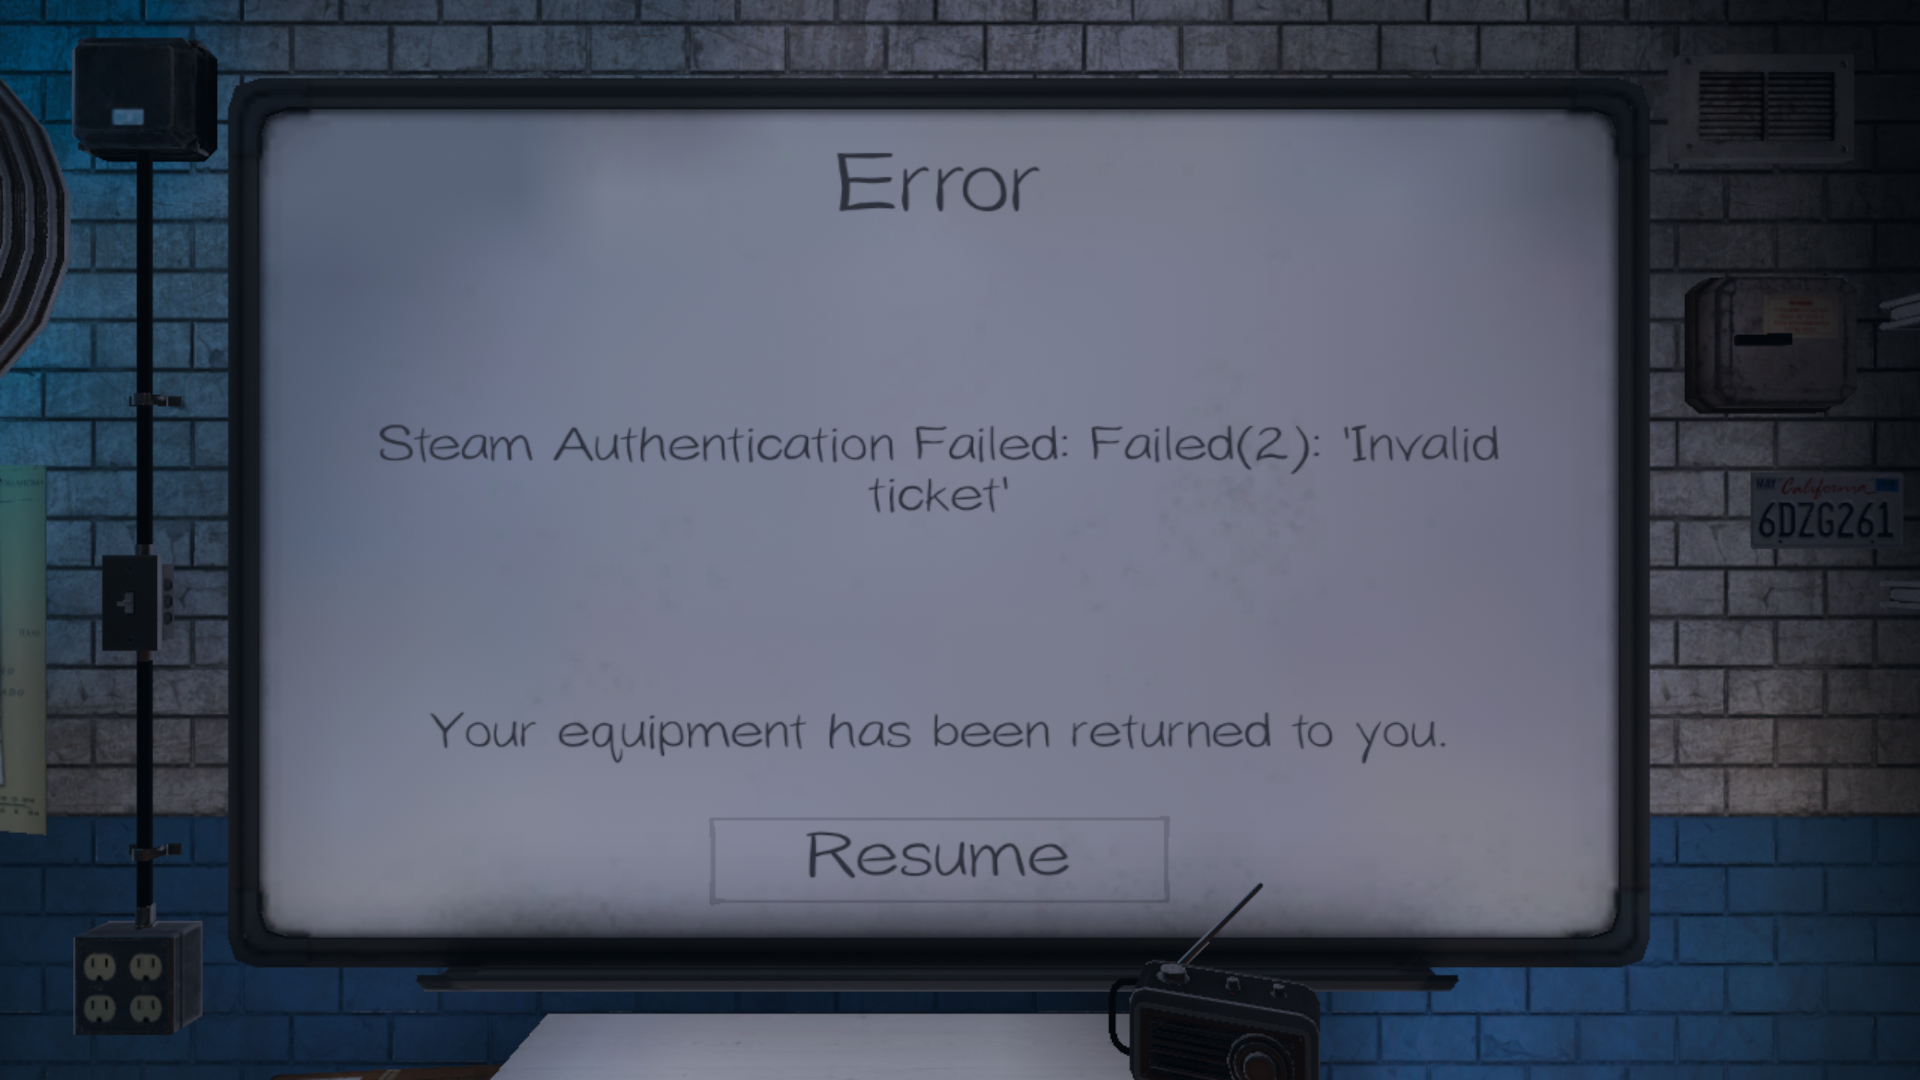 Phasmophobia Steam Authentication Failed